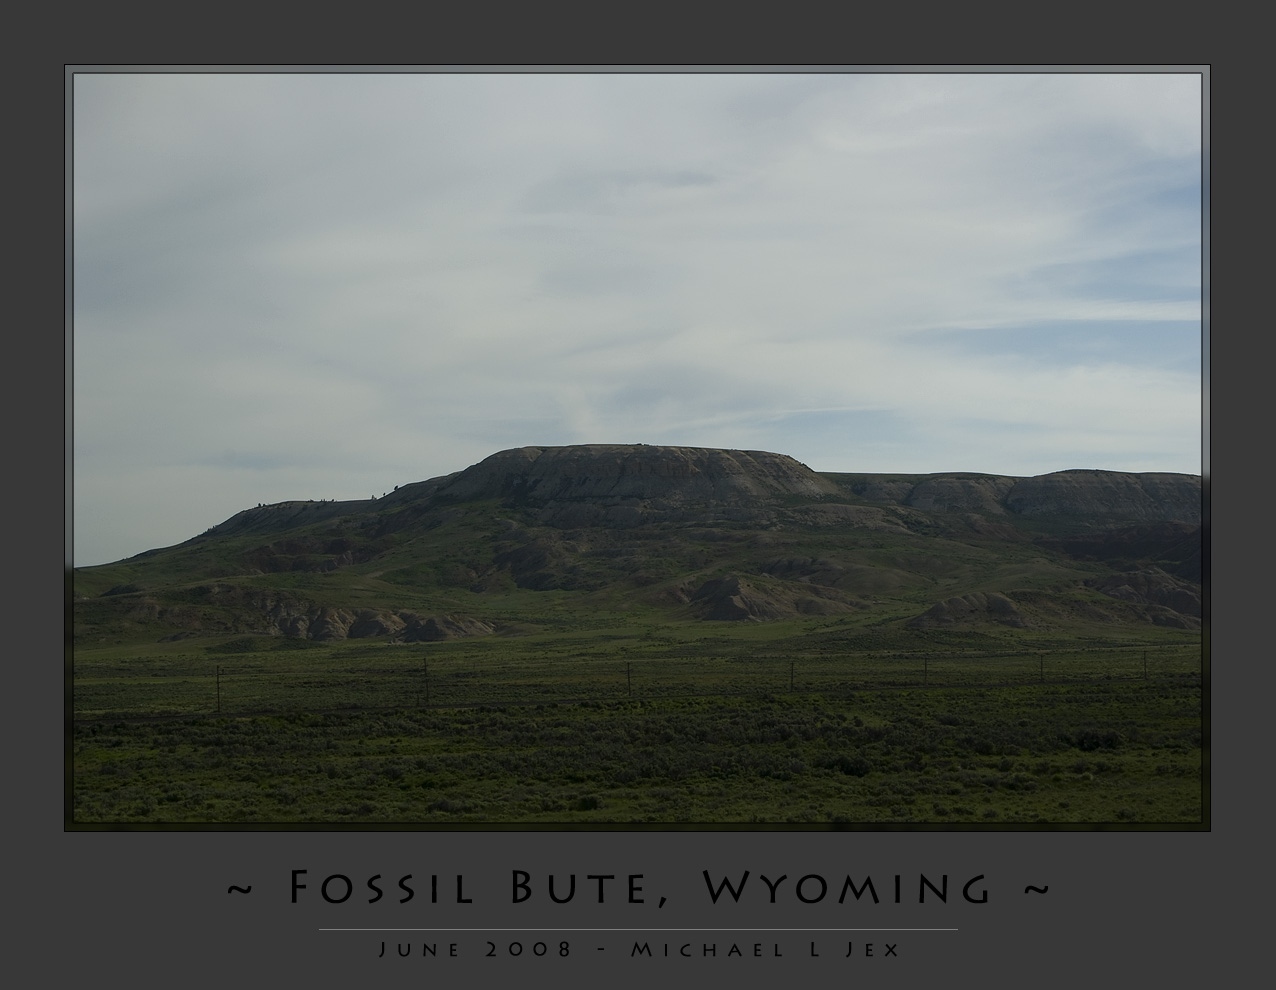 Fossil Butte Wyoming